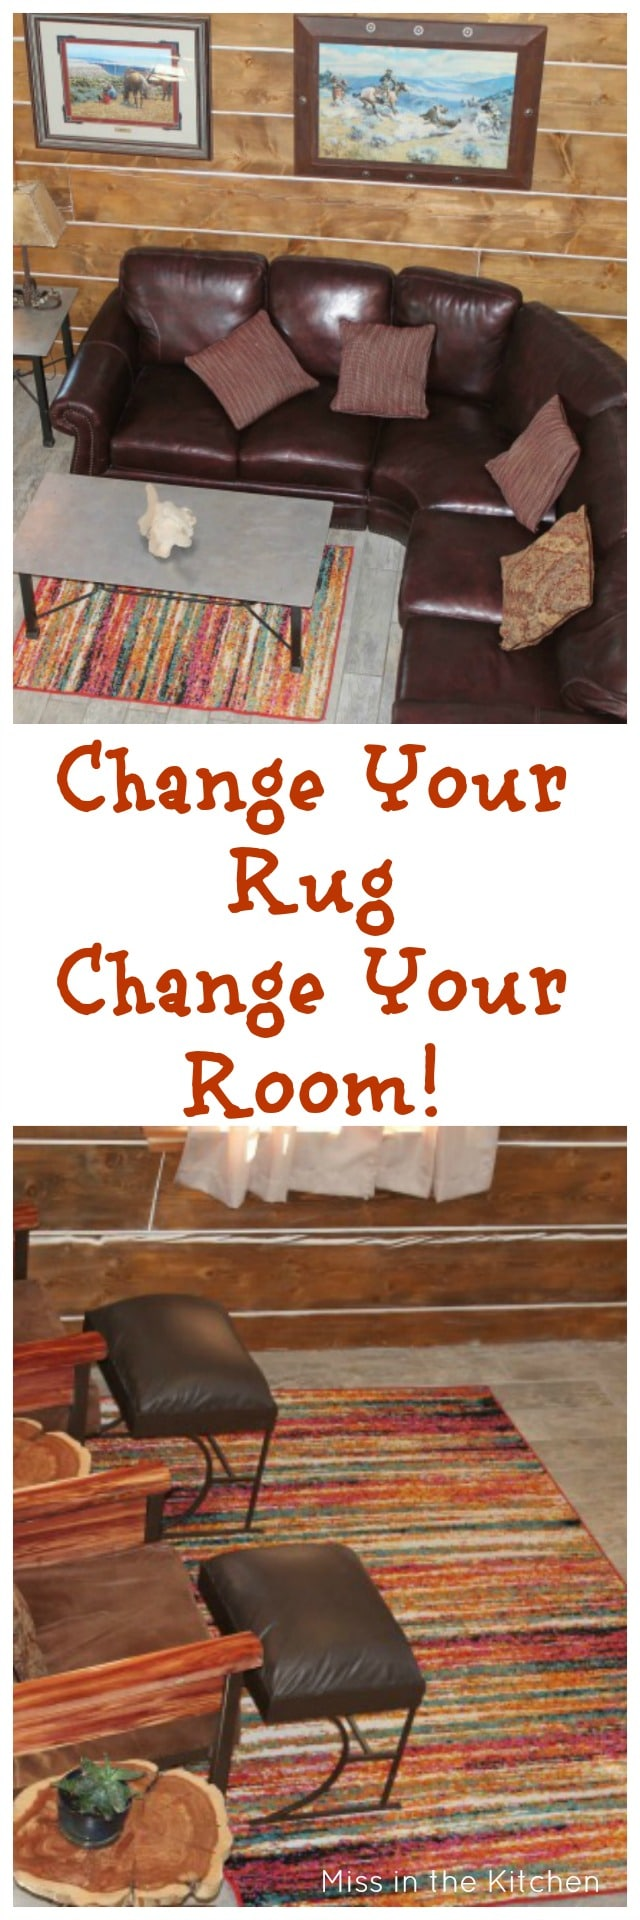 Change Your Rug Change Your Room ~ Log Cabin Living Room Update from MissintheKitchen.com #ad WIth Wayfair